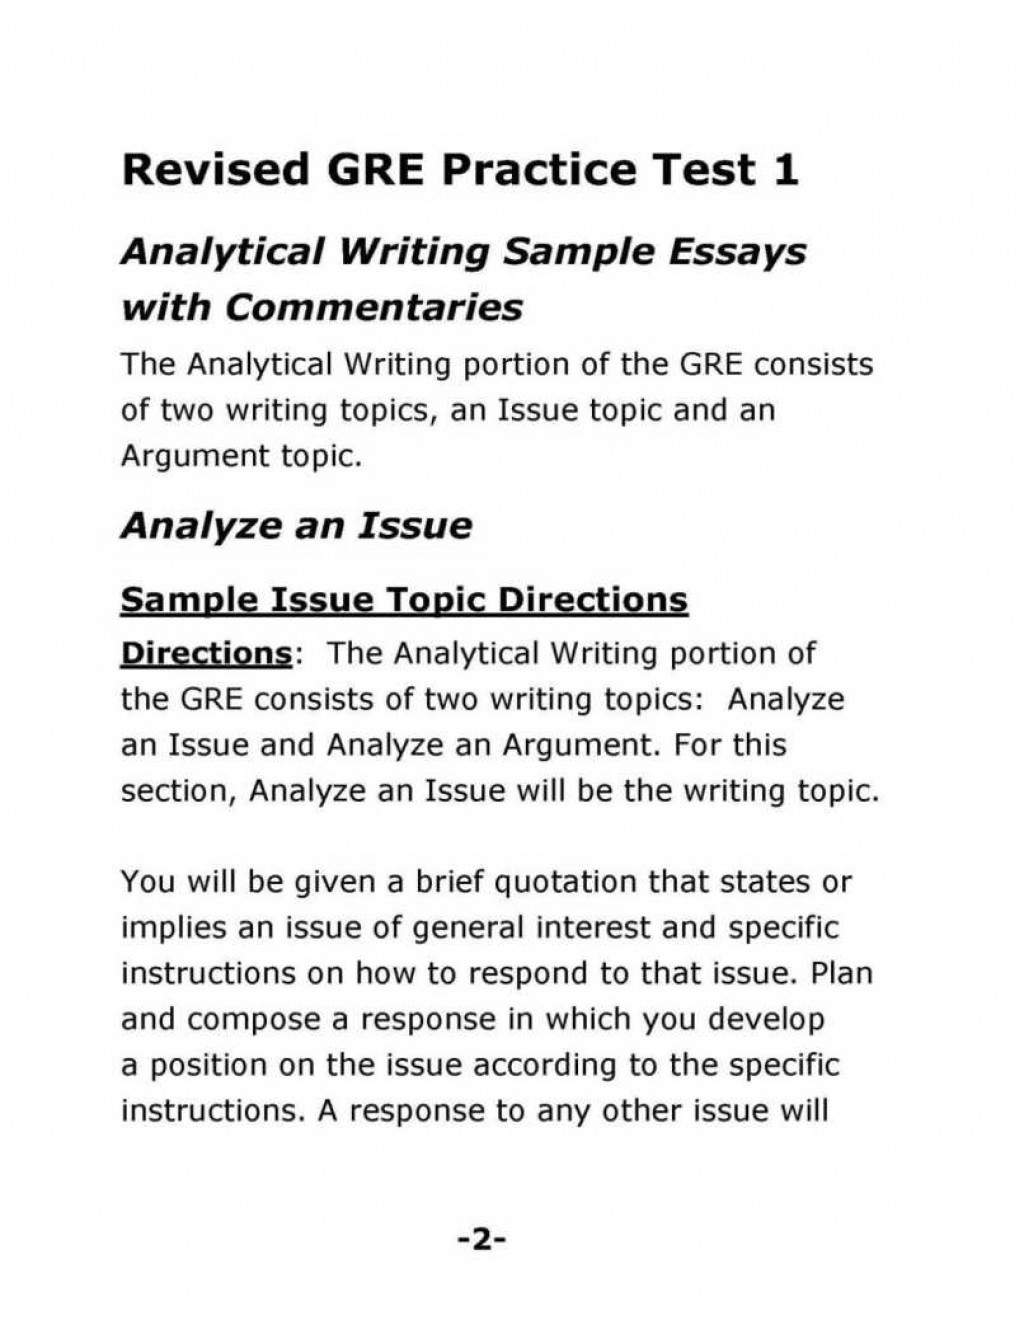 003 Essay Example Gre Argument How To Write Formatted Resume Template Sample Test Papers With Soluti Samples Length Rhesus Monkey Questions Score Pool Prompt Fearsome Topics Answers Examples Large